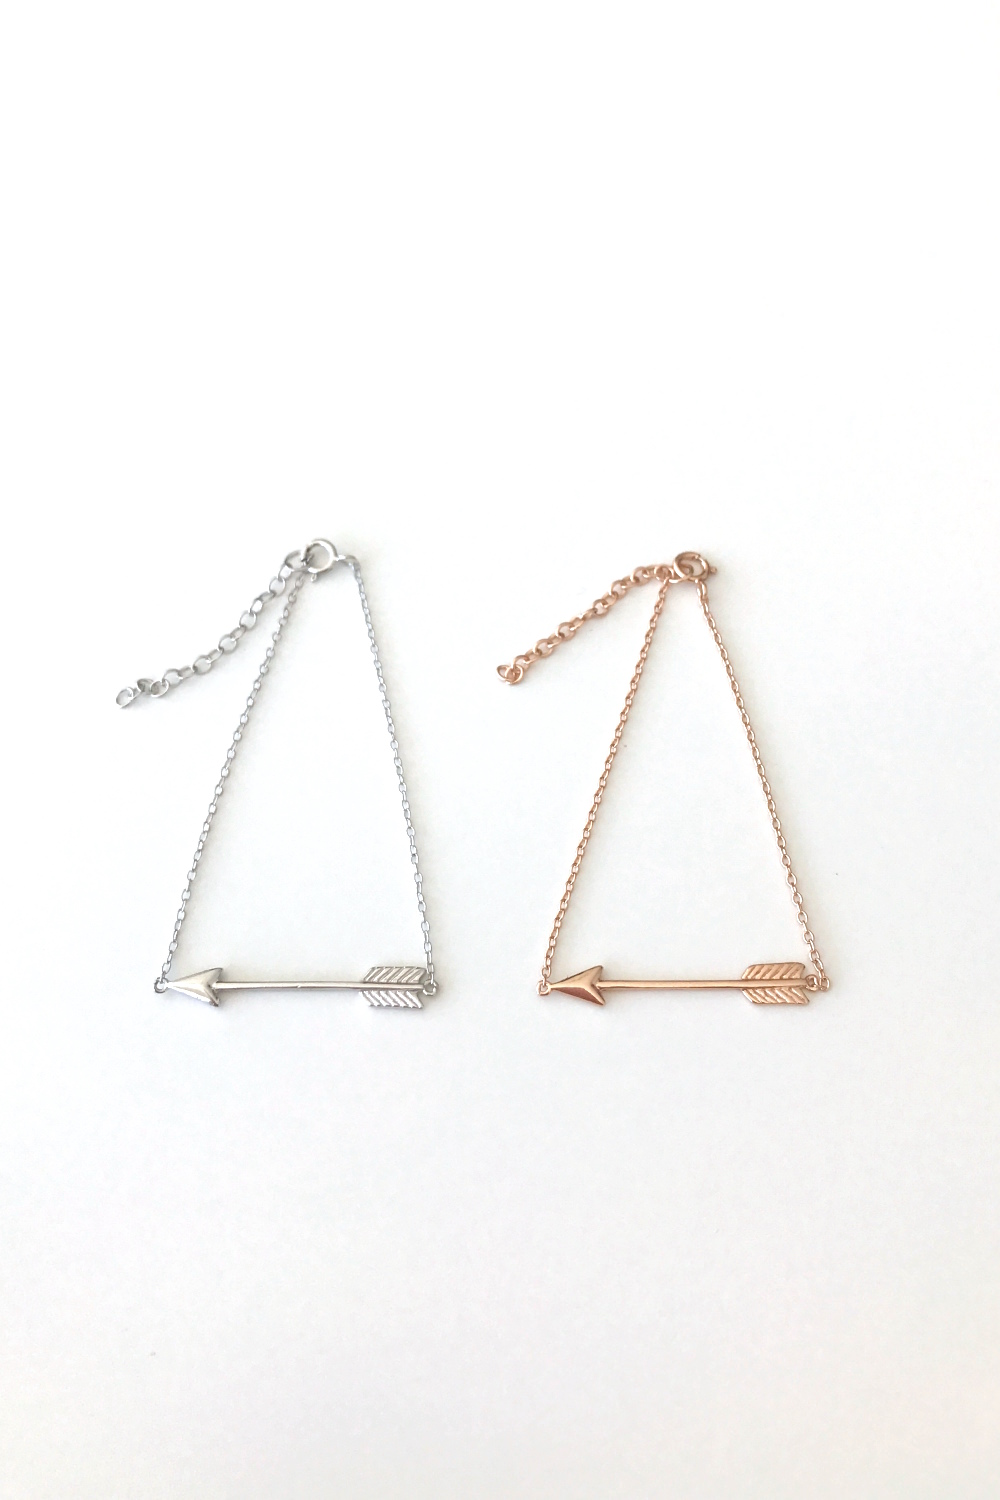 Arrow shaped bracelet